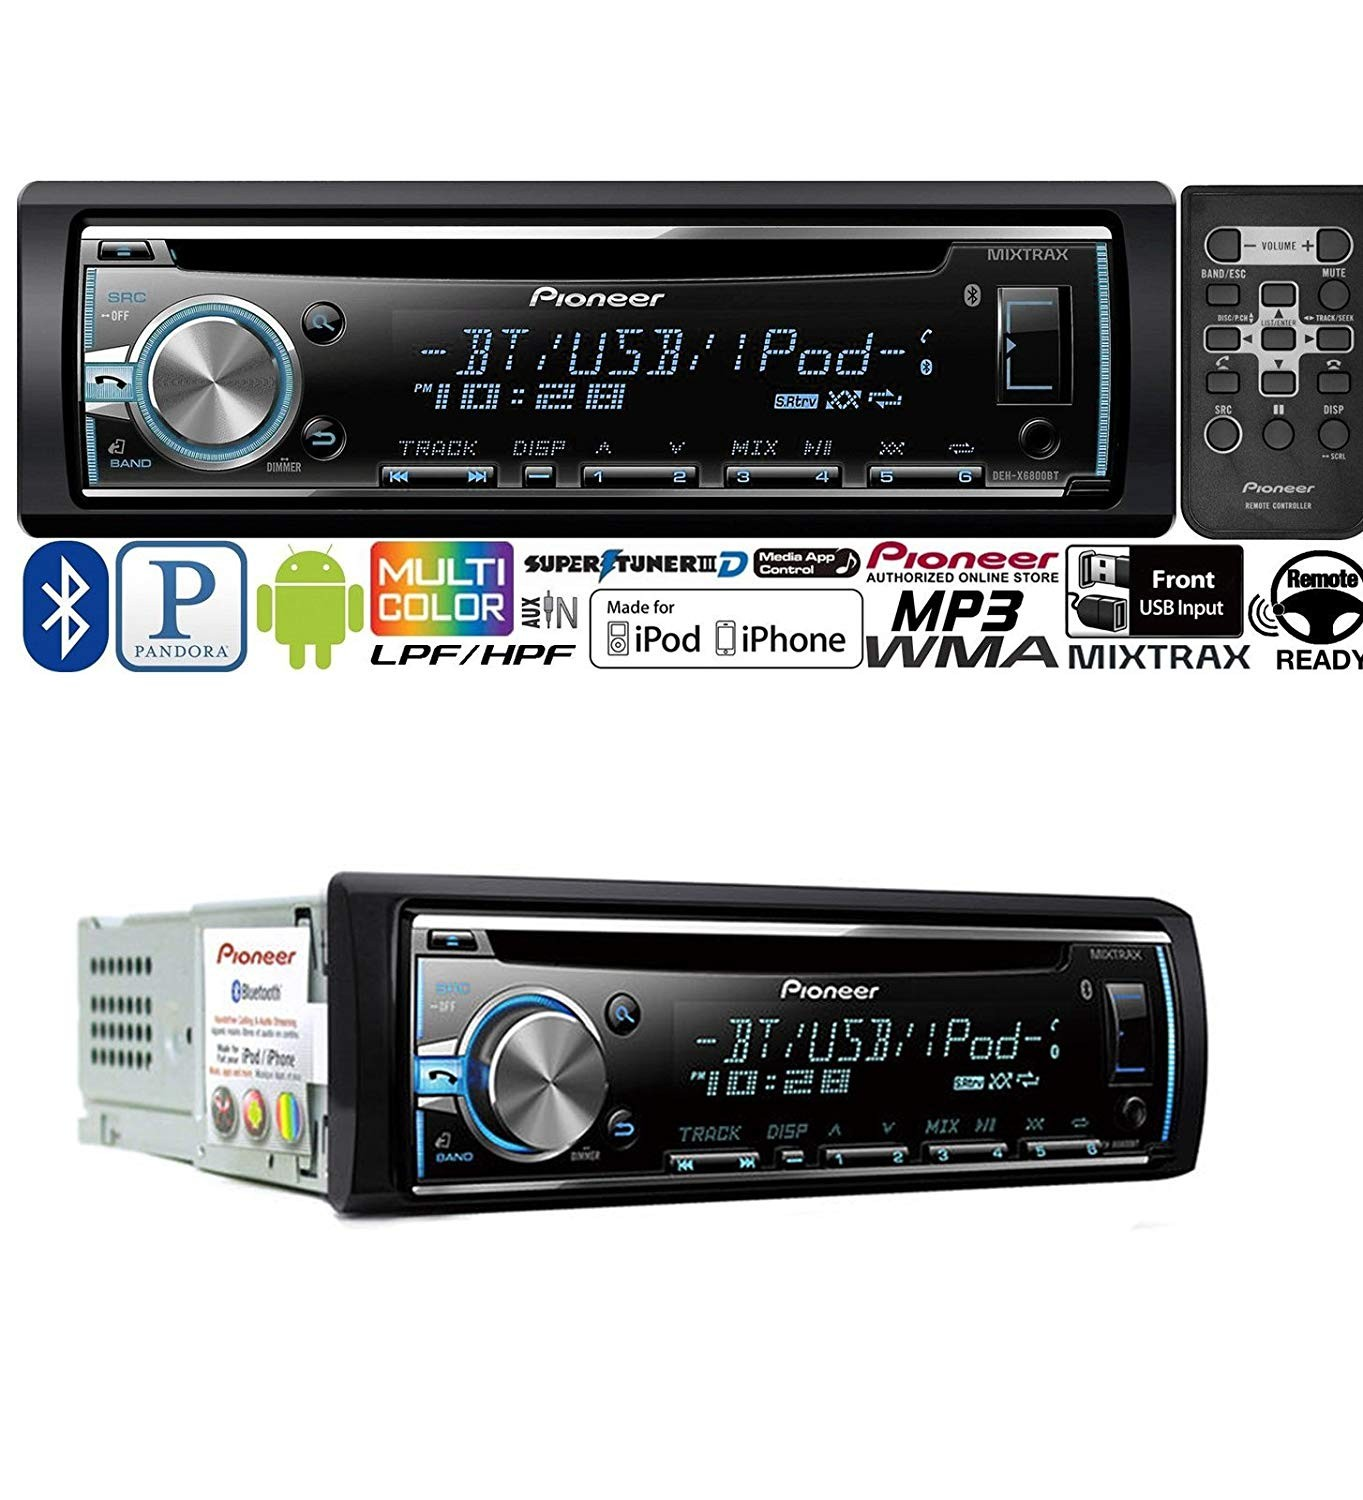 Deh 3300ub In Dash Cd Player Itravelpages Pioneer P2600 Wiring Diagram X6800bt Harness 4k Wallpapers Design 1100 Stereo